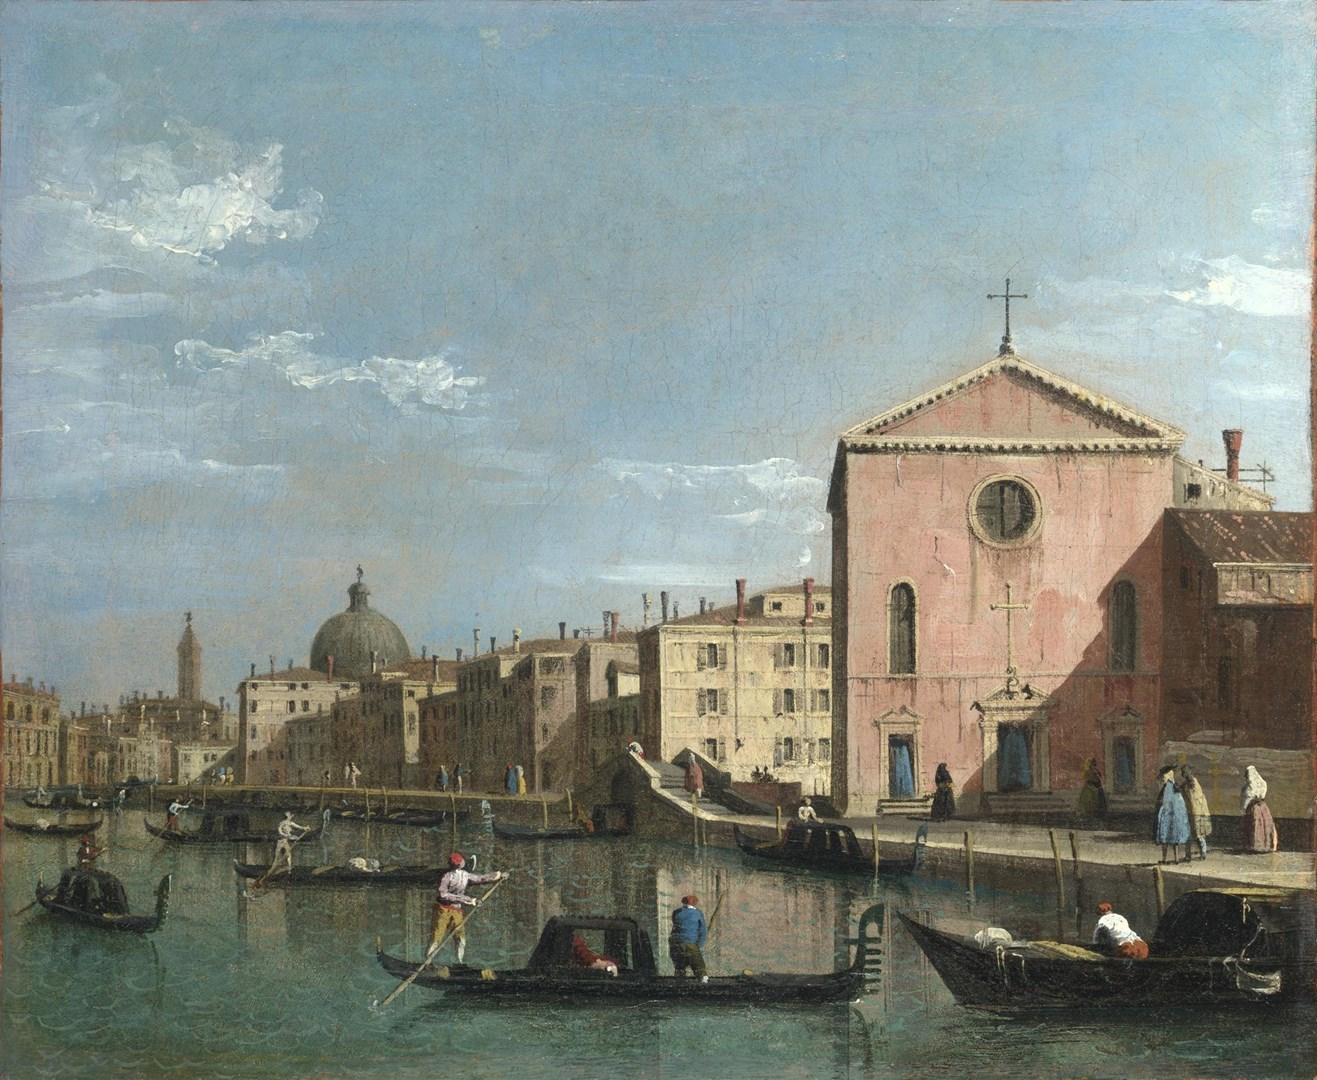 Venice: The Grand Canal facing Santa Croce by Follower of Canaletto